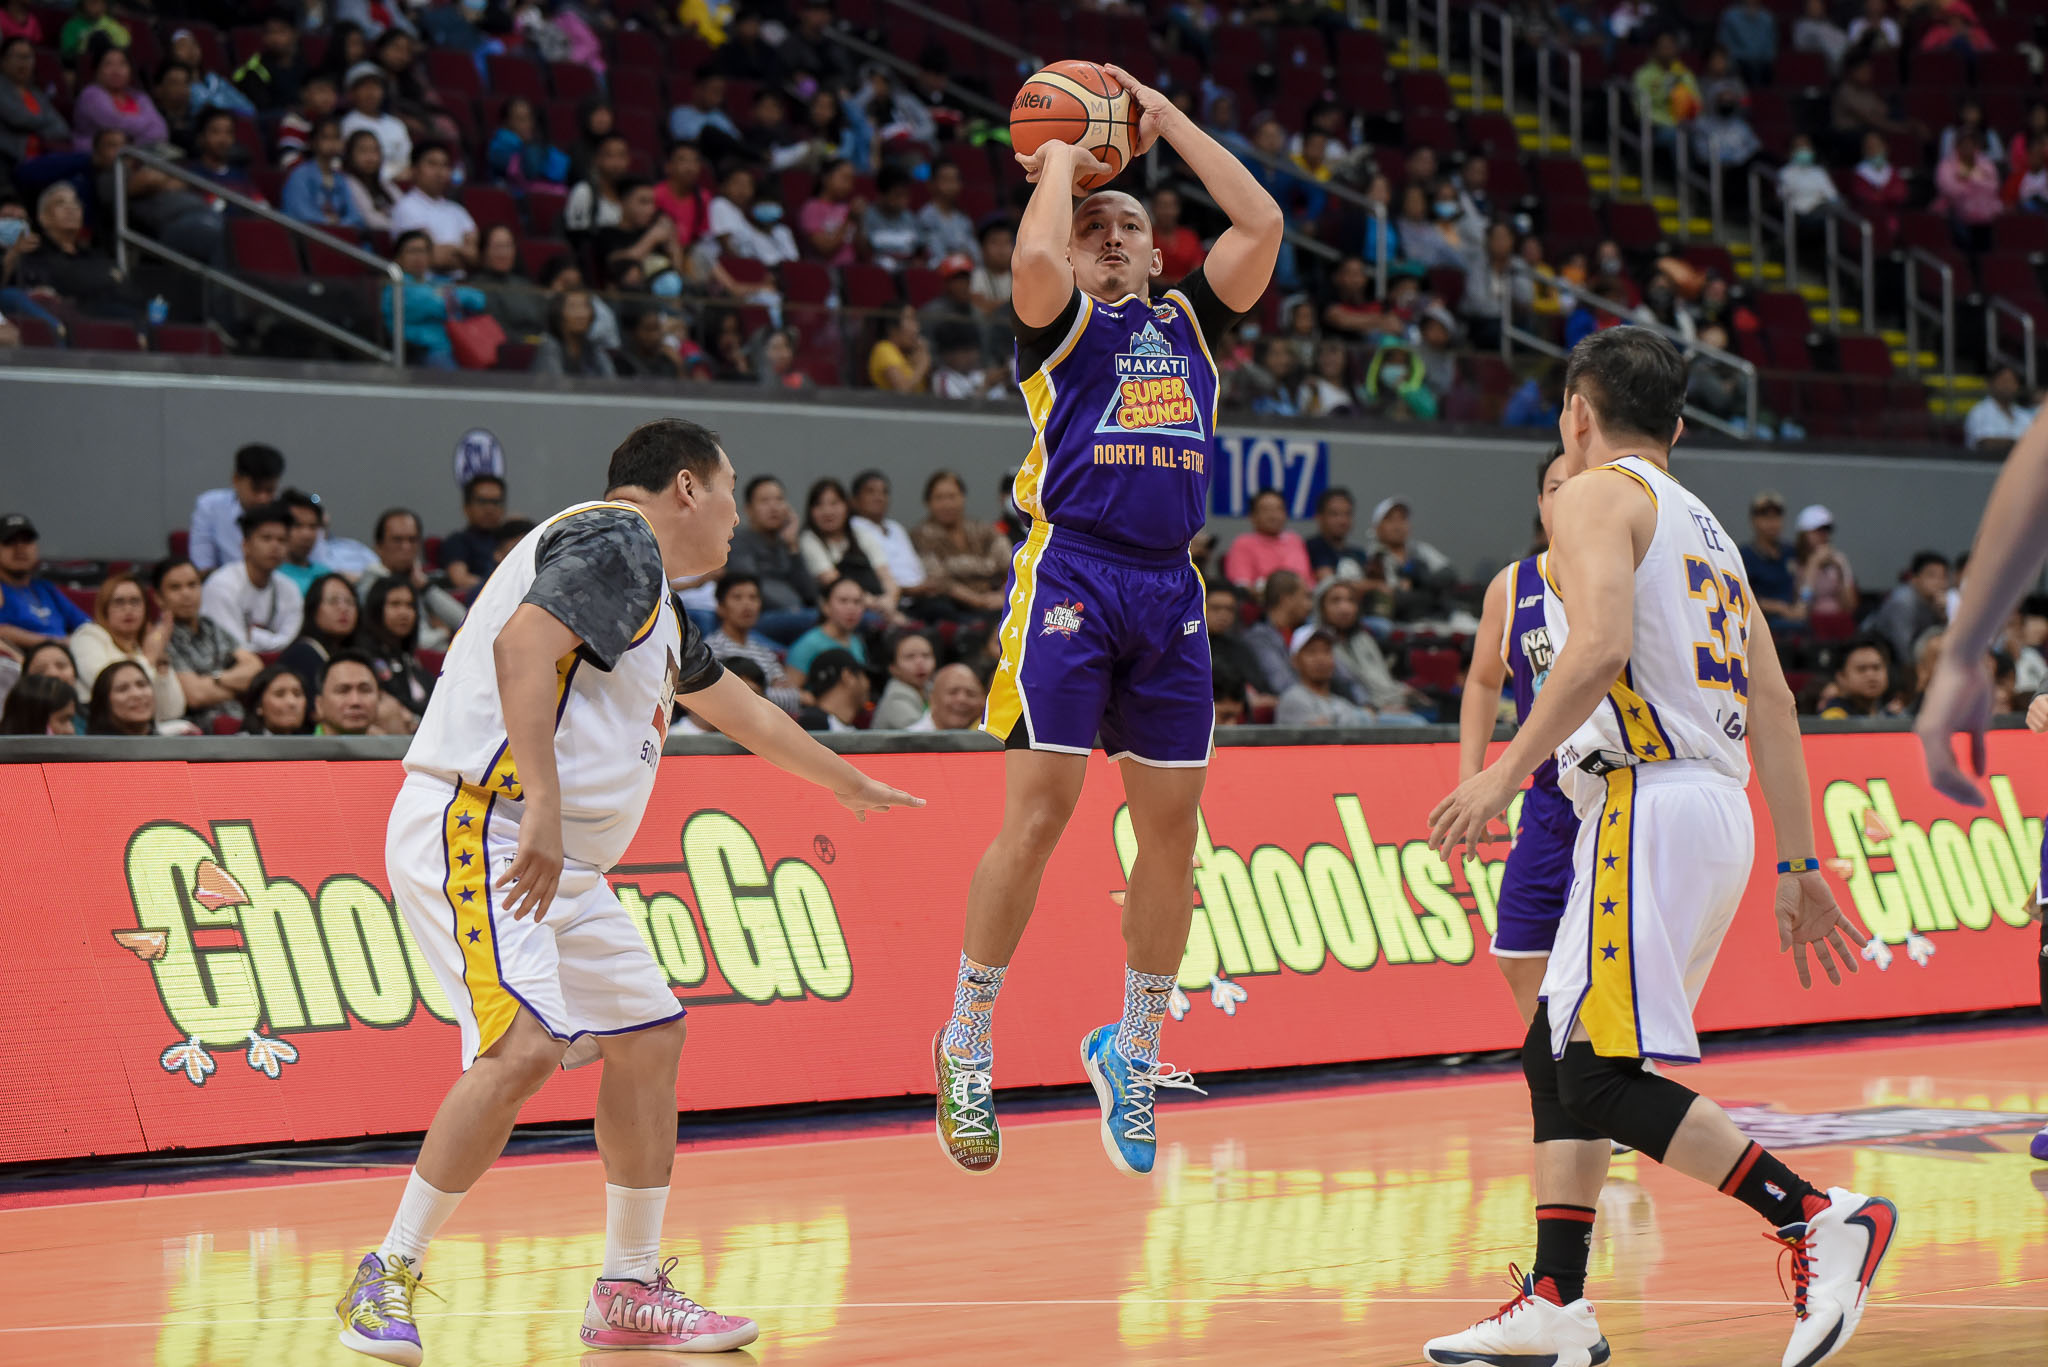 Tiebreaker Times Paolo Orbeta leads North past South anew in MPBL Executive Game Basketball MPBL News  Xandrei Cruz Paolo Orbeta Merman Flores Jemal Vizcarra Jay Javelosa Aldrianne Anglim 2020 MPBL All-Star Game 2019-20 MPBL Lakan Cup